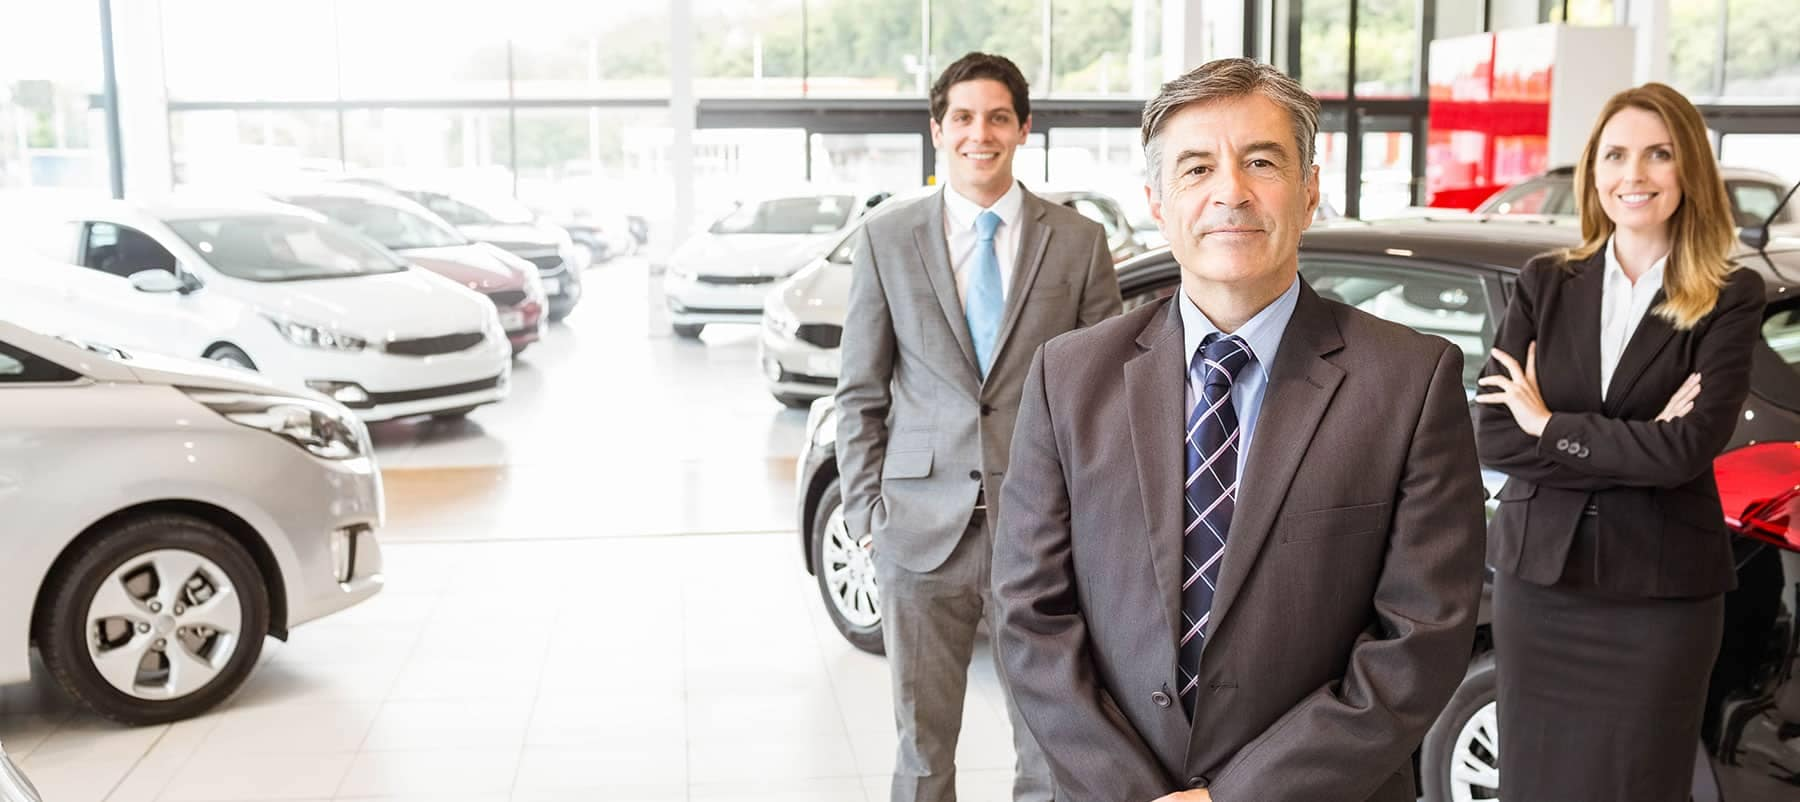 three car salesmen and saleswomen in suits standing in their showroom